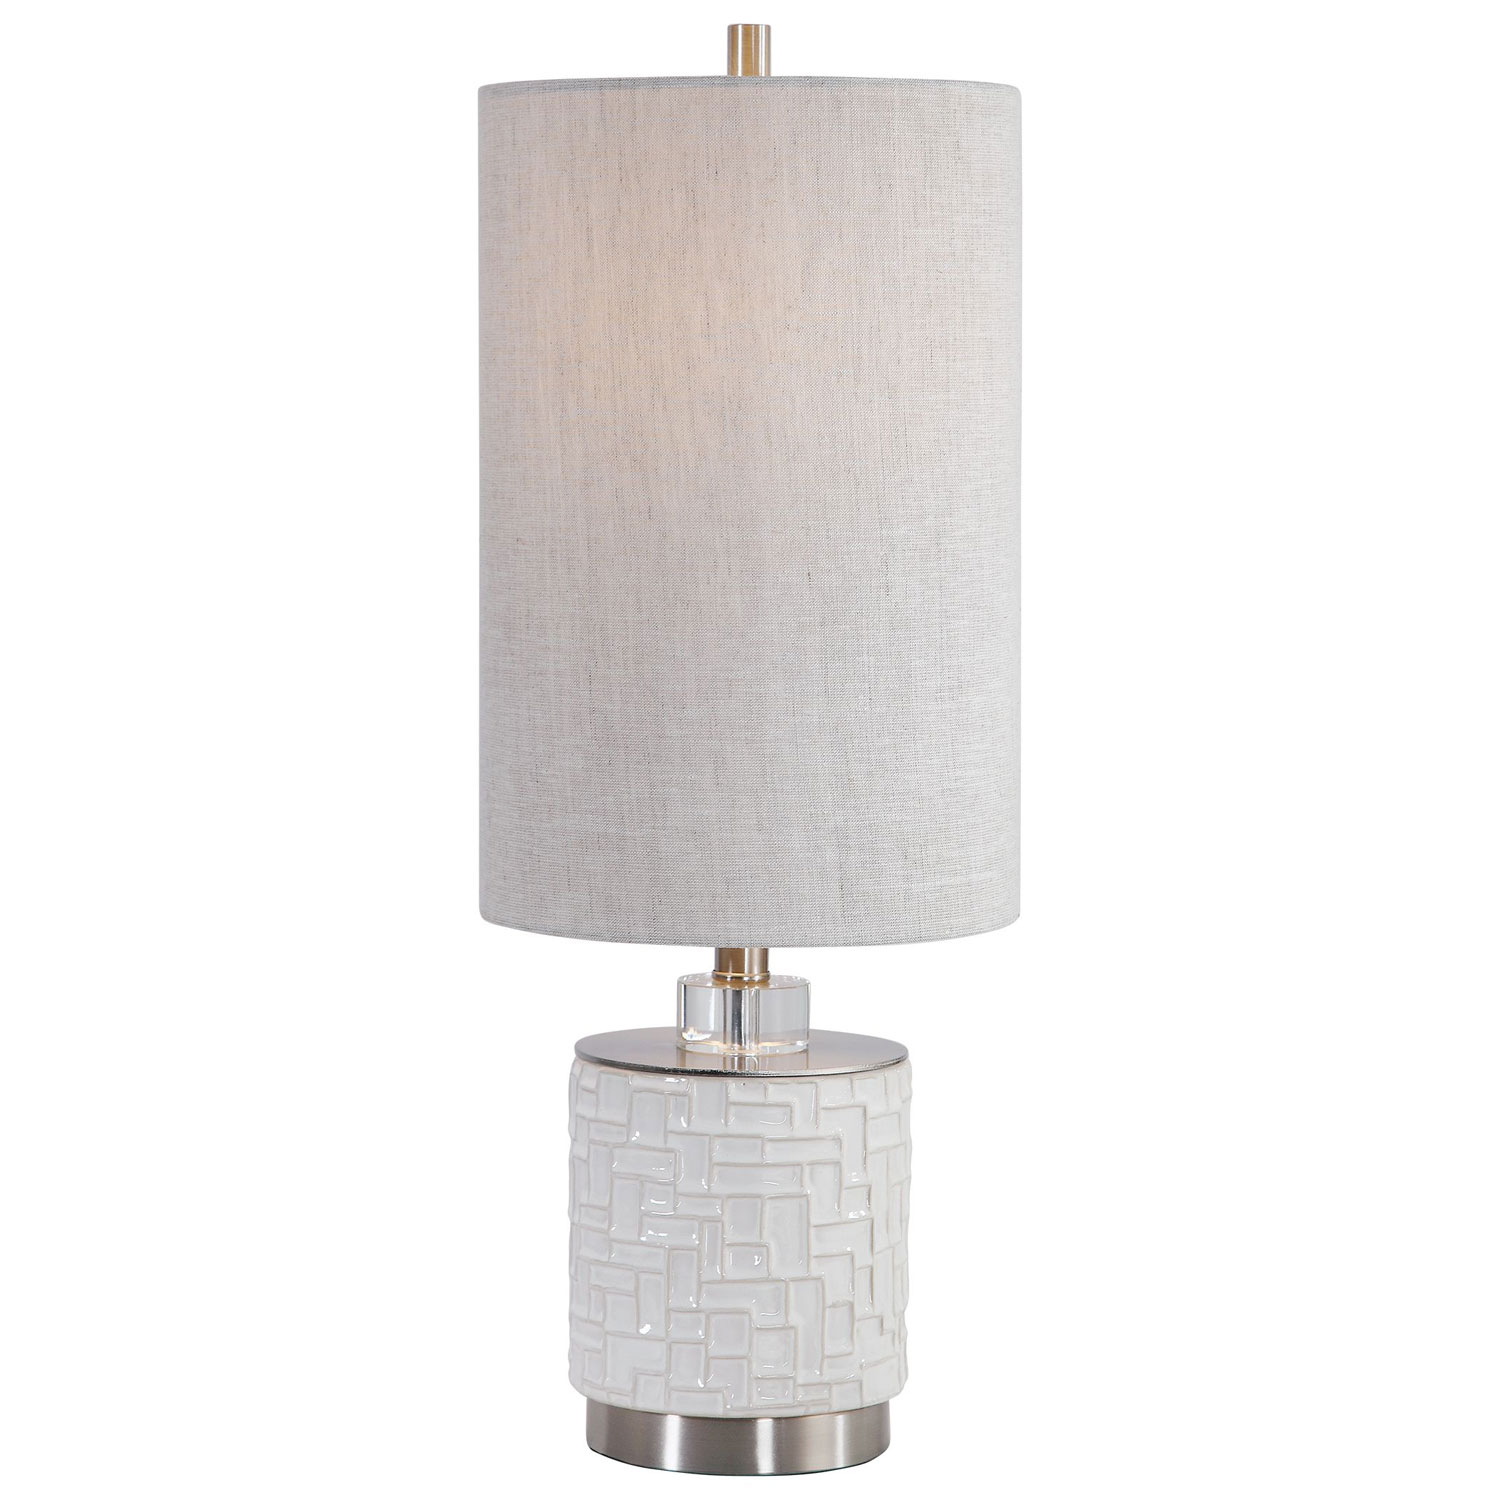 Uttermost Elyn Accent Lamp - Glossy White